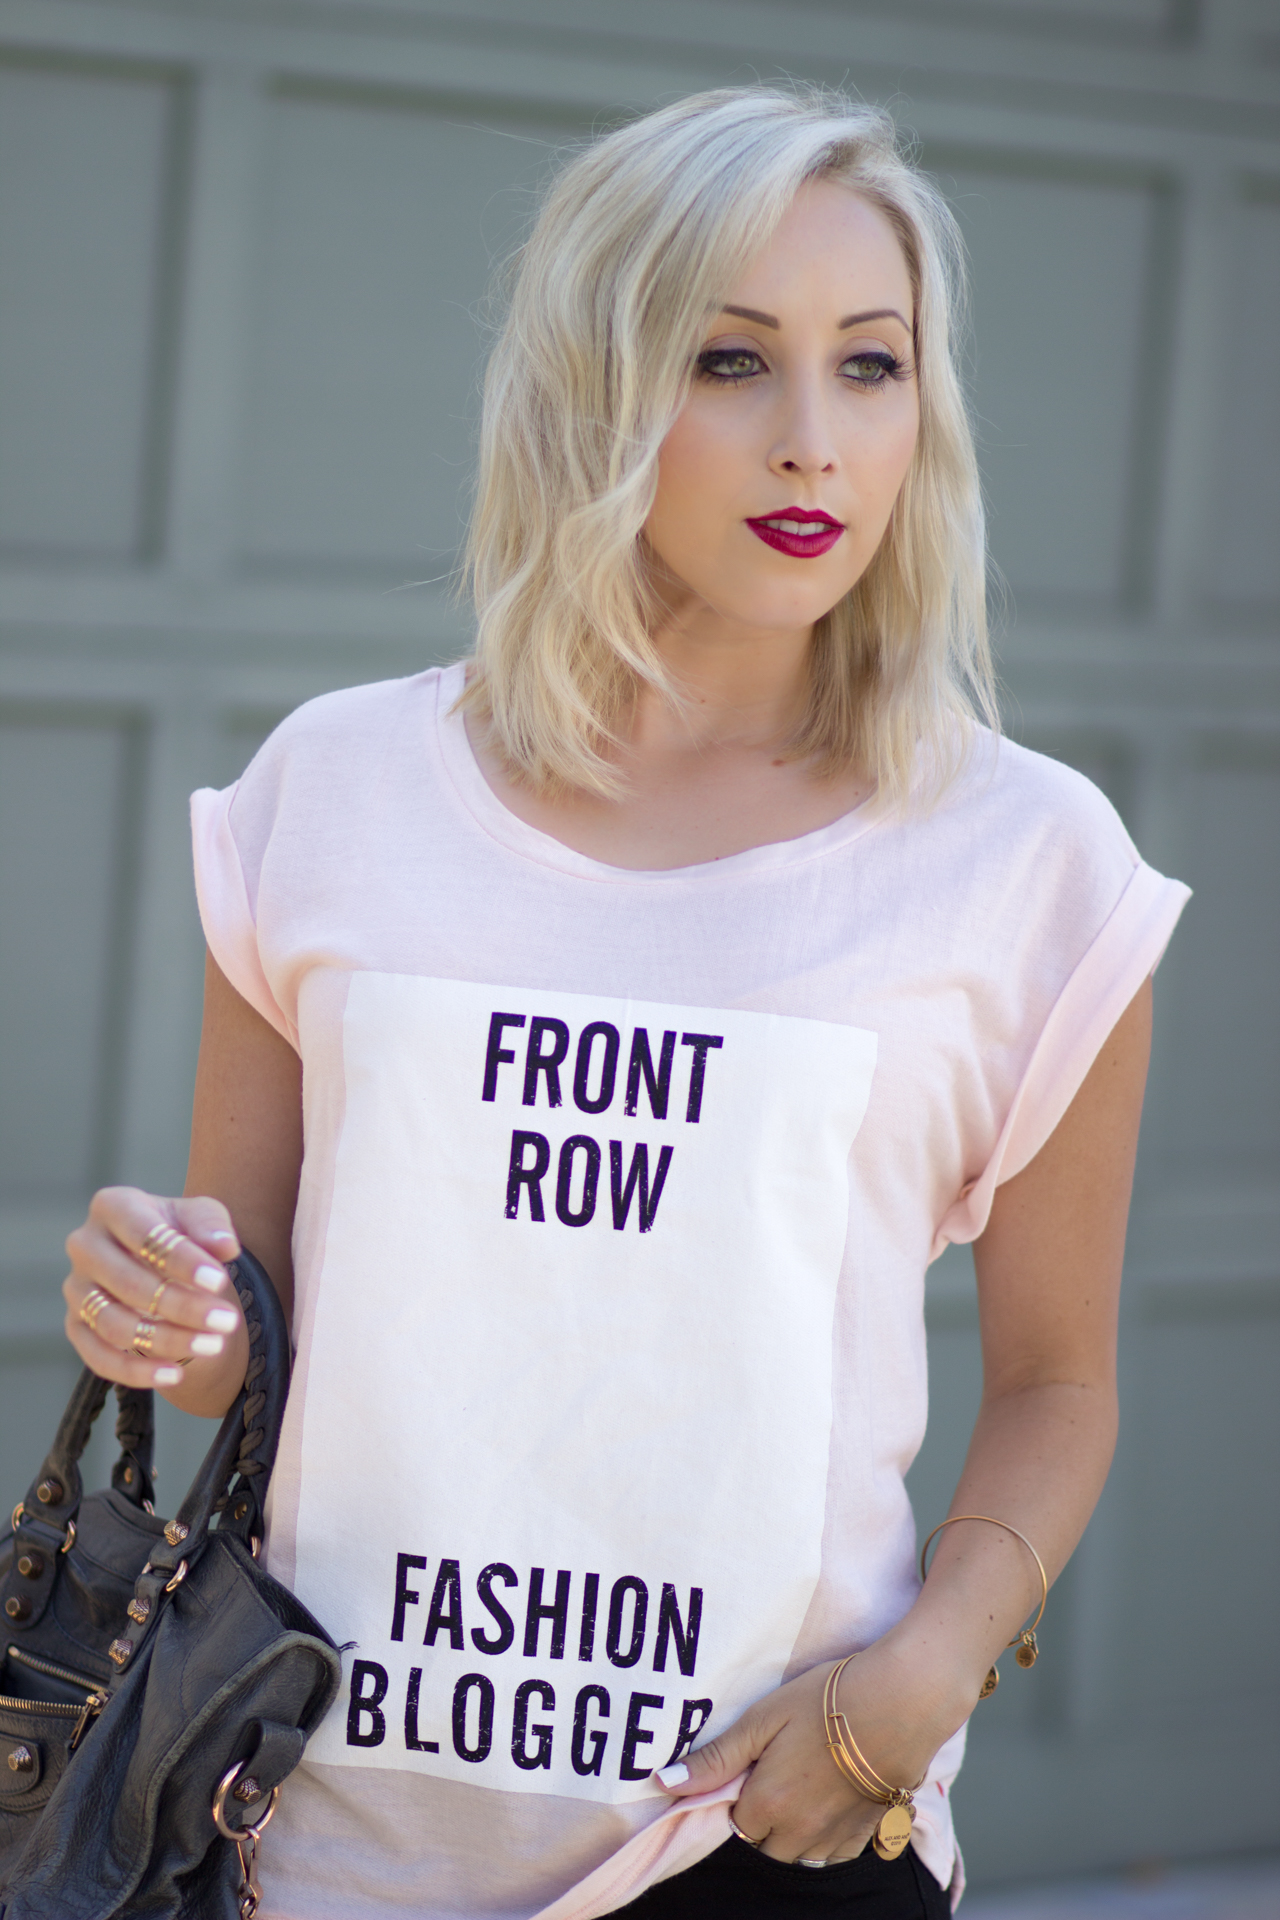 """Front Row Fashion Blogger"" from @CastroFashion 